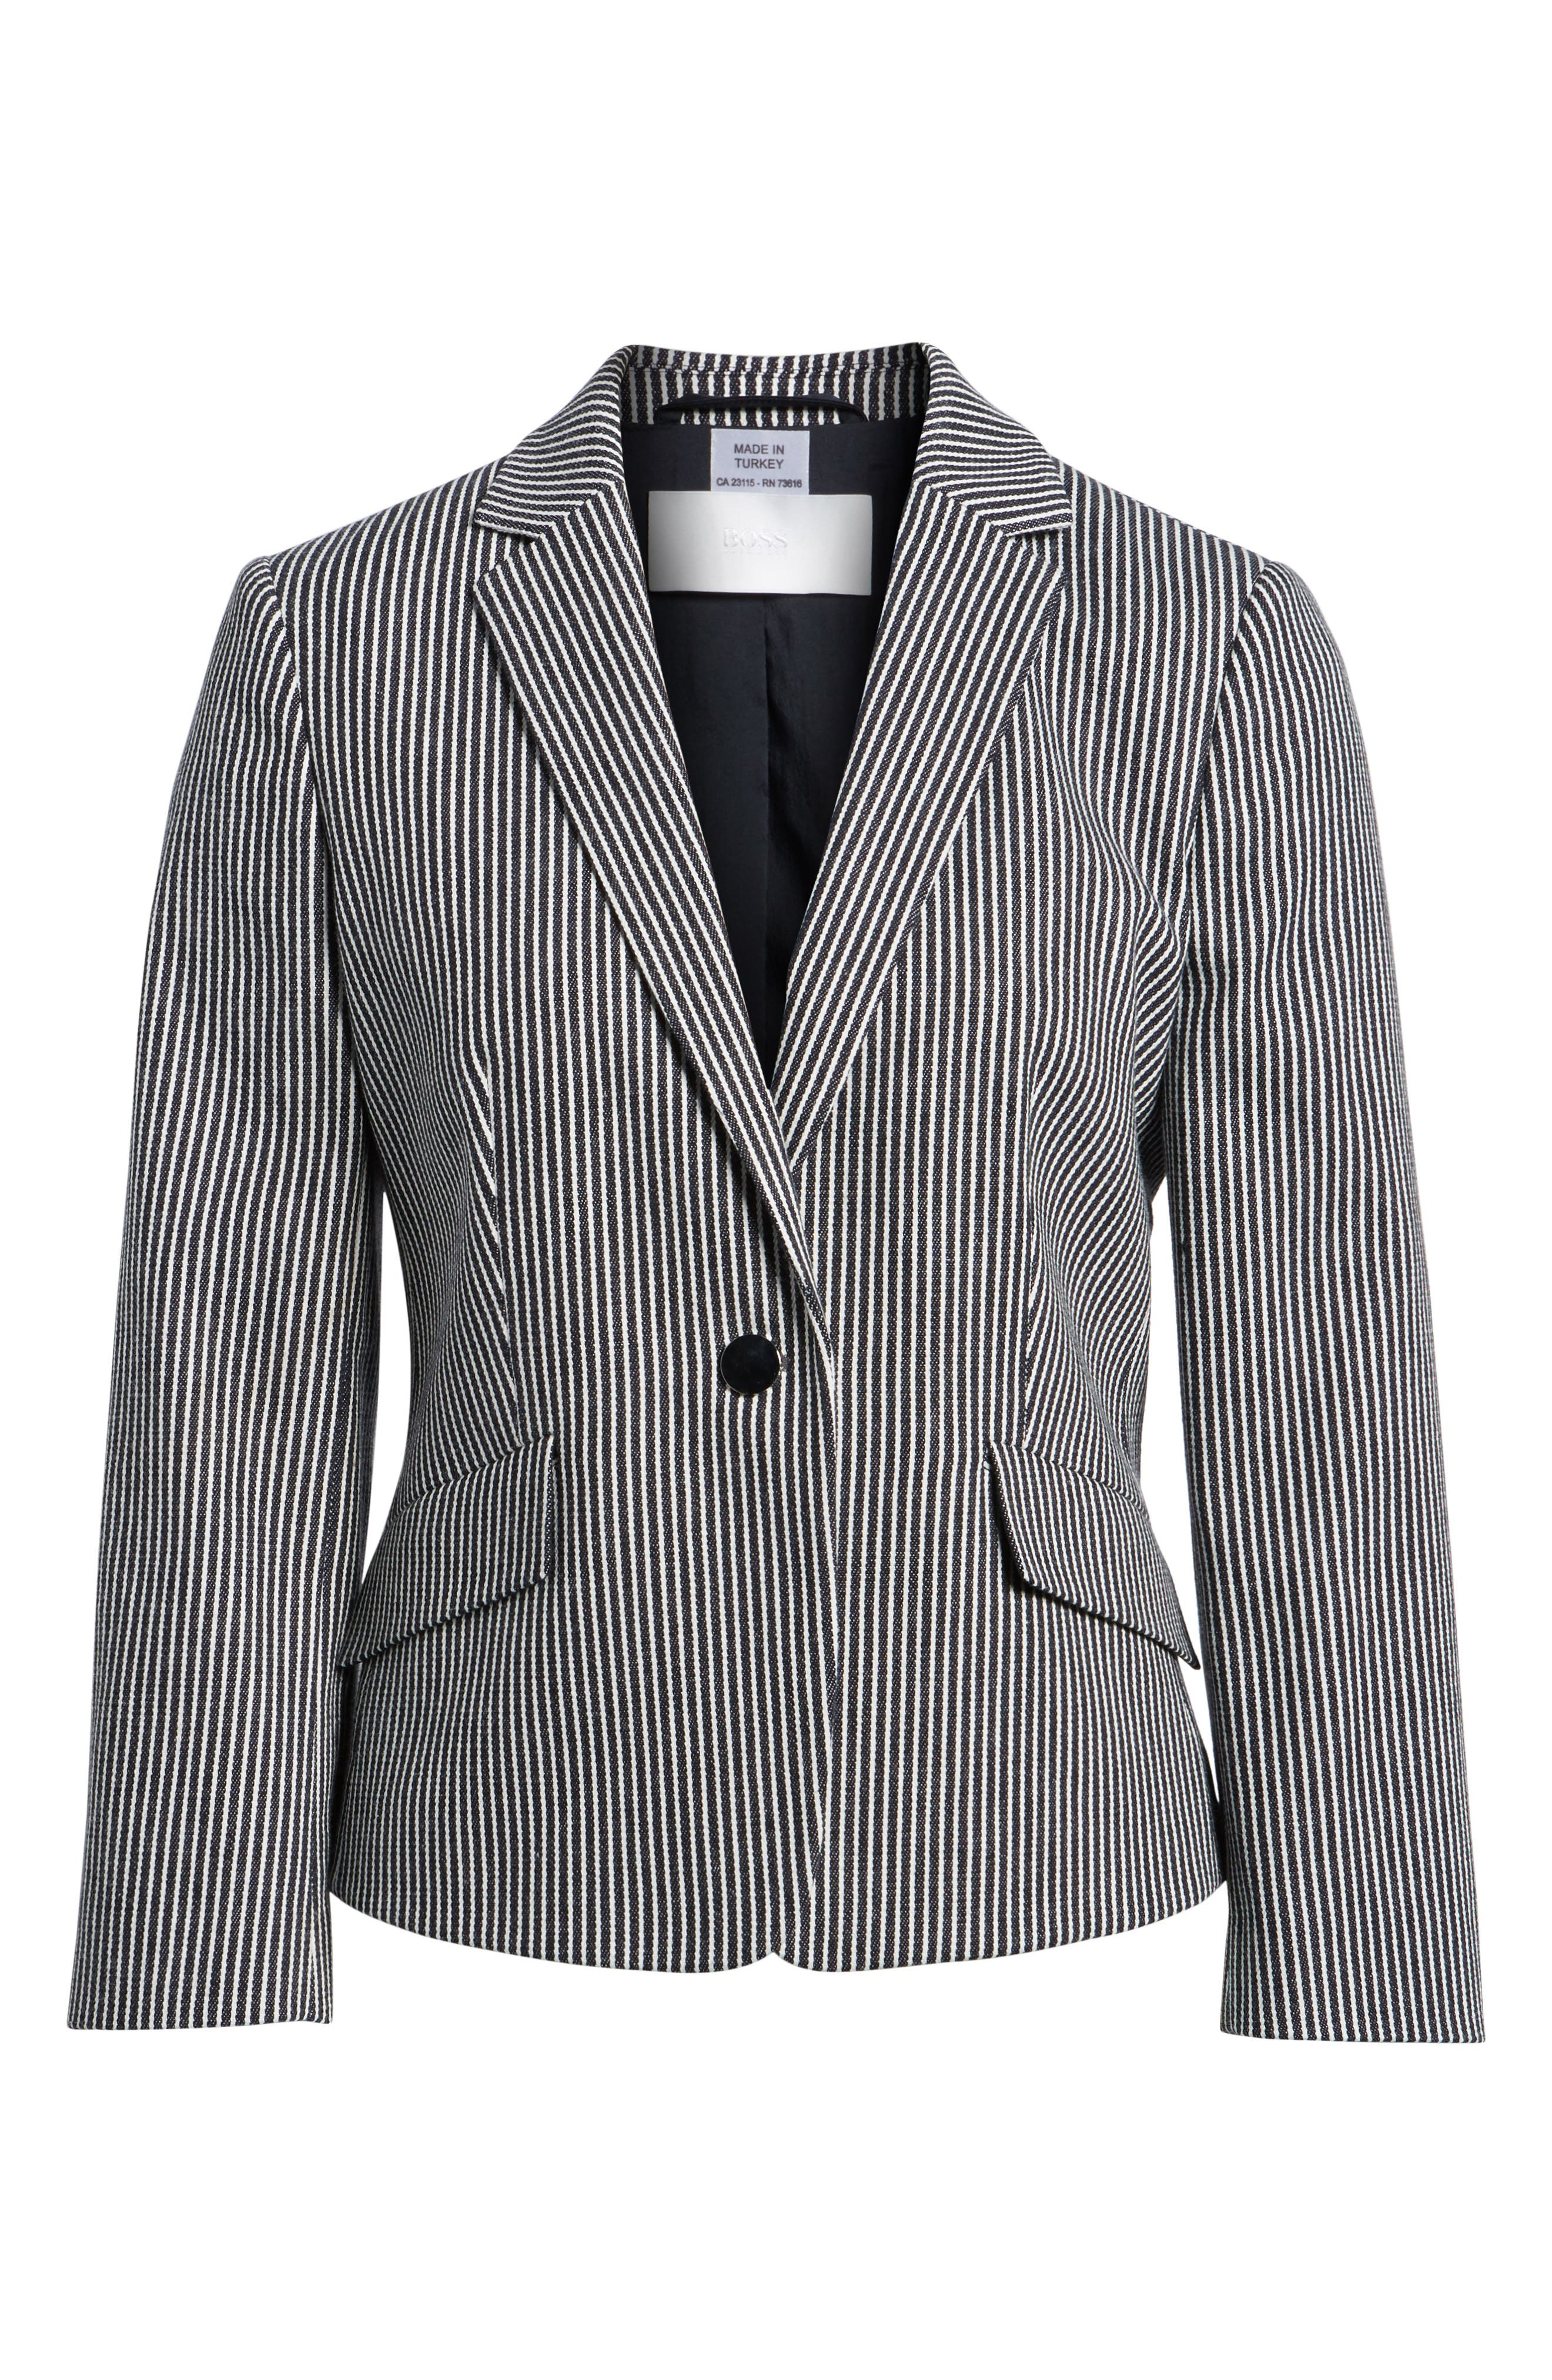 Katemika Stripe Stretch Cotton Suit Jacket,                             Alternate thumbnail 5, color,                             461